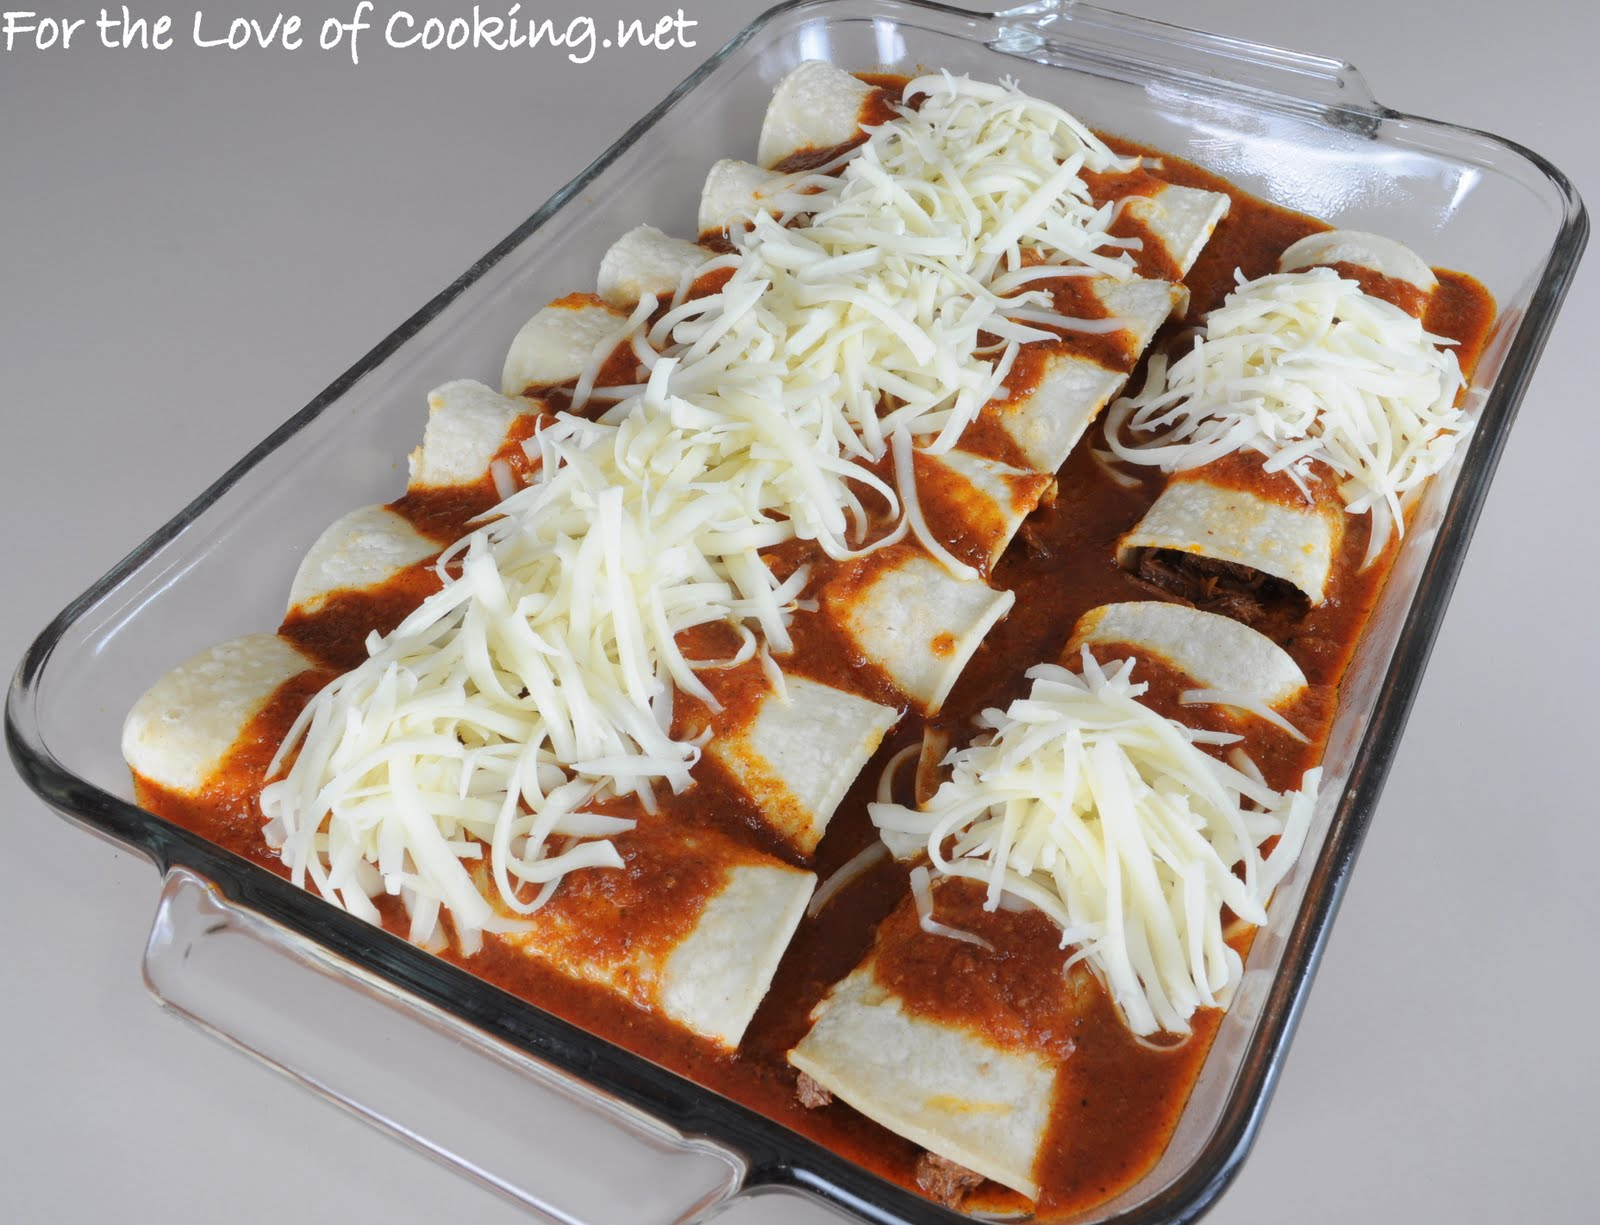 Shredded Beef Enchiladas with Homemade Enchilada Sauce | For the Love ...